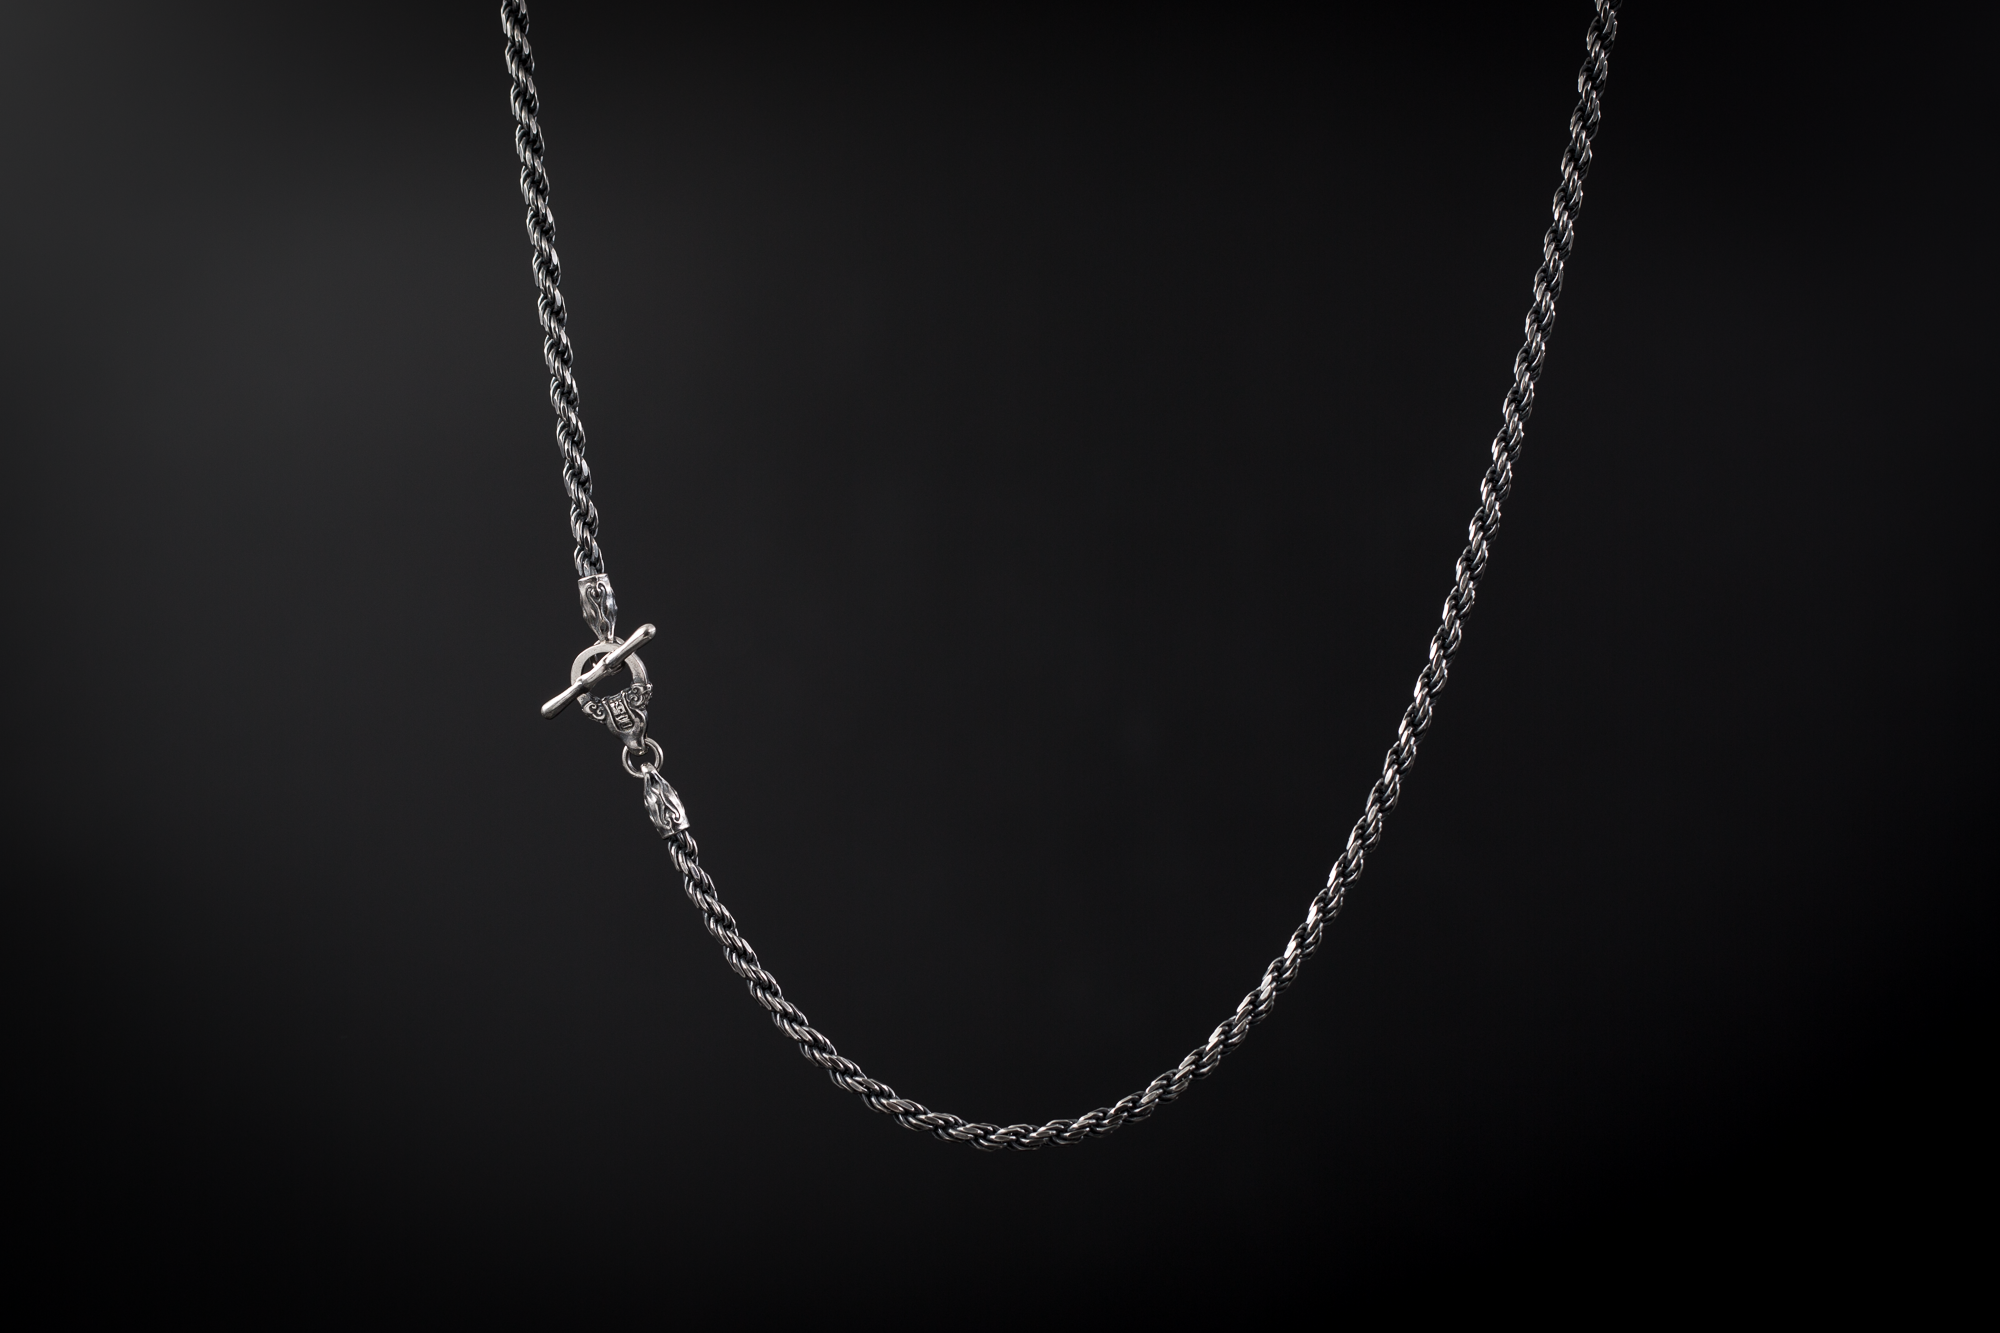 Silver Necklace Chain 3mmaged Finishsterling Silver 925 Etsy Silver Chain For Men Silver Chain Necklace Chains Necklace